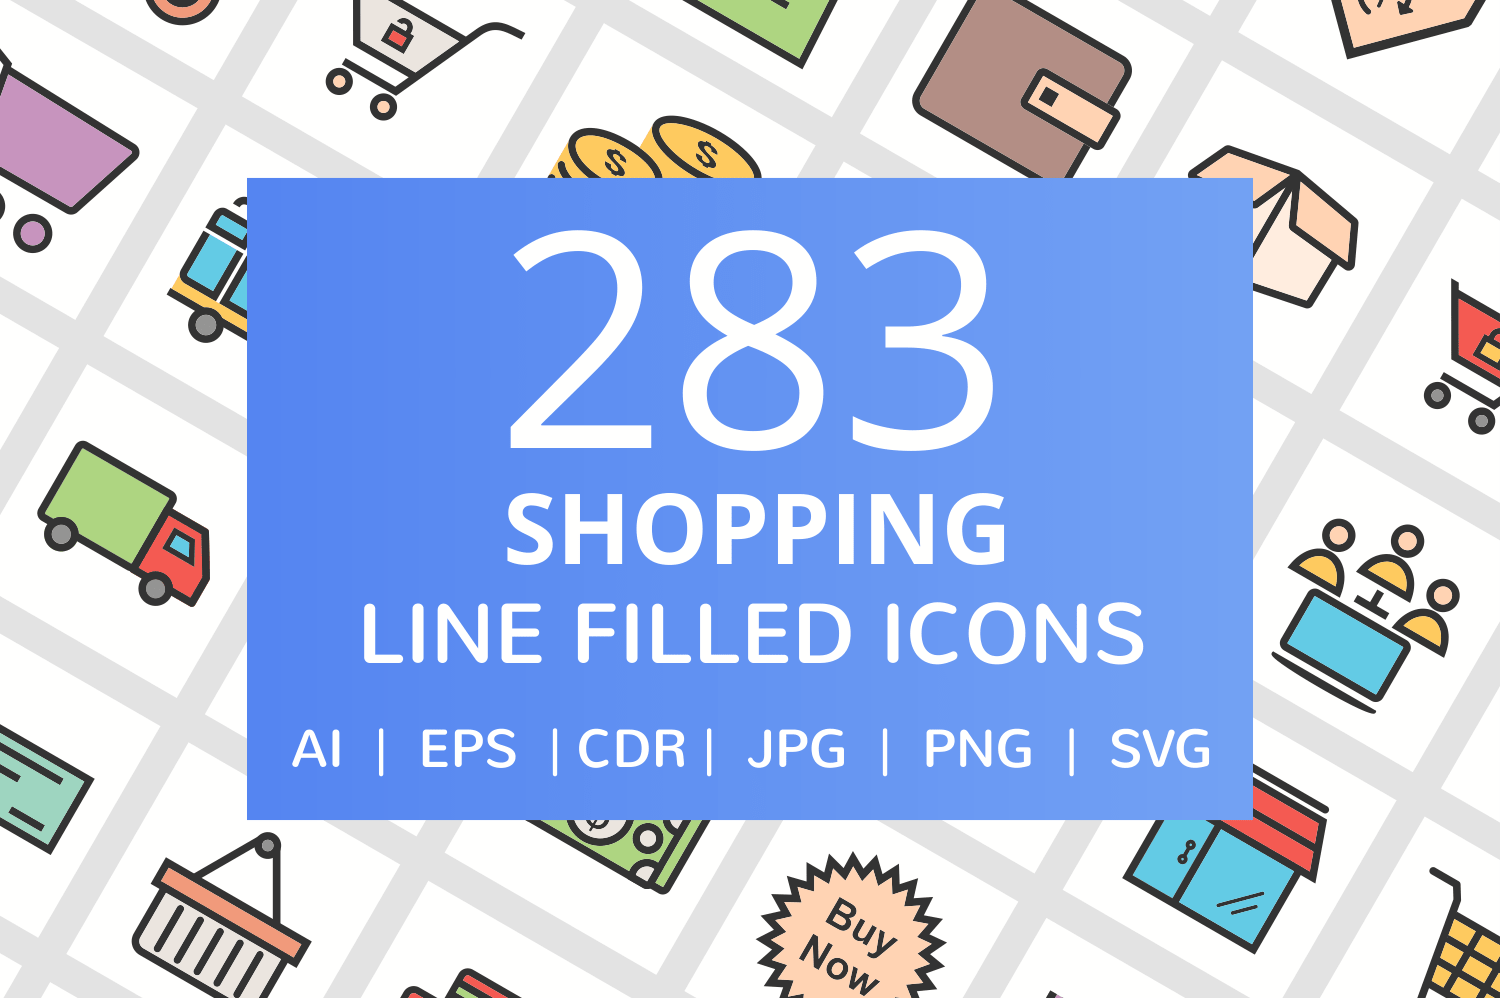 283 Shopping Filled Line Icons example image 1